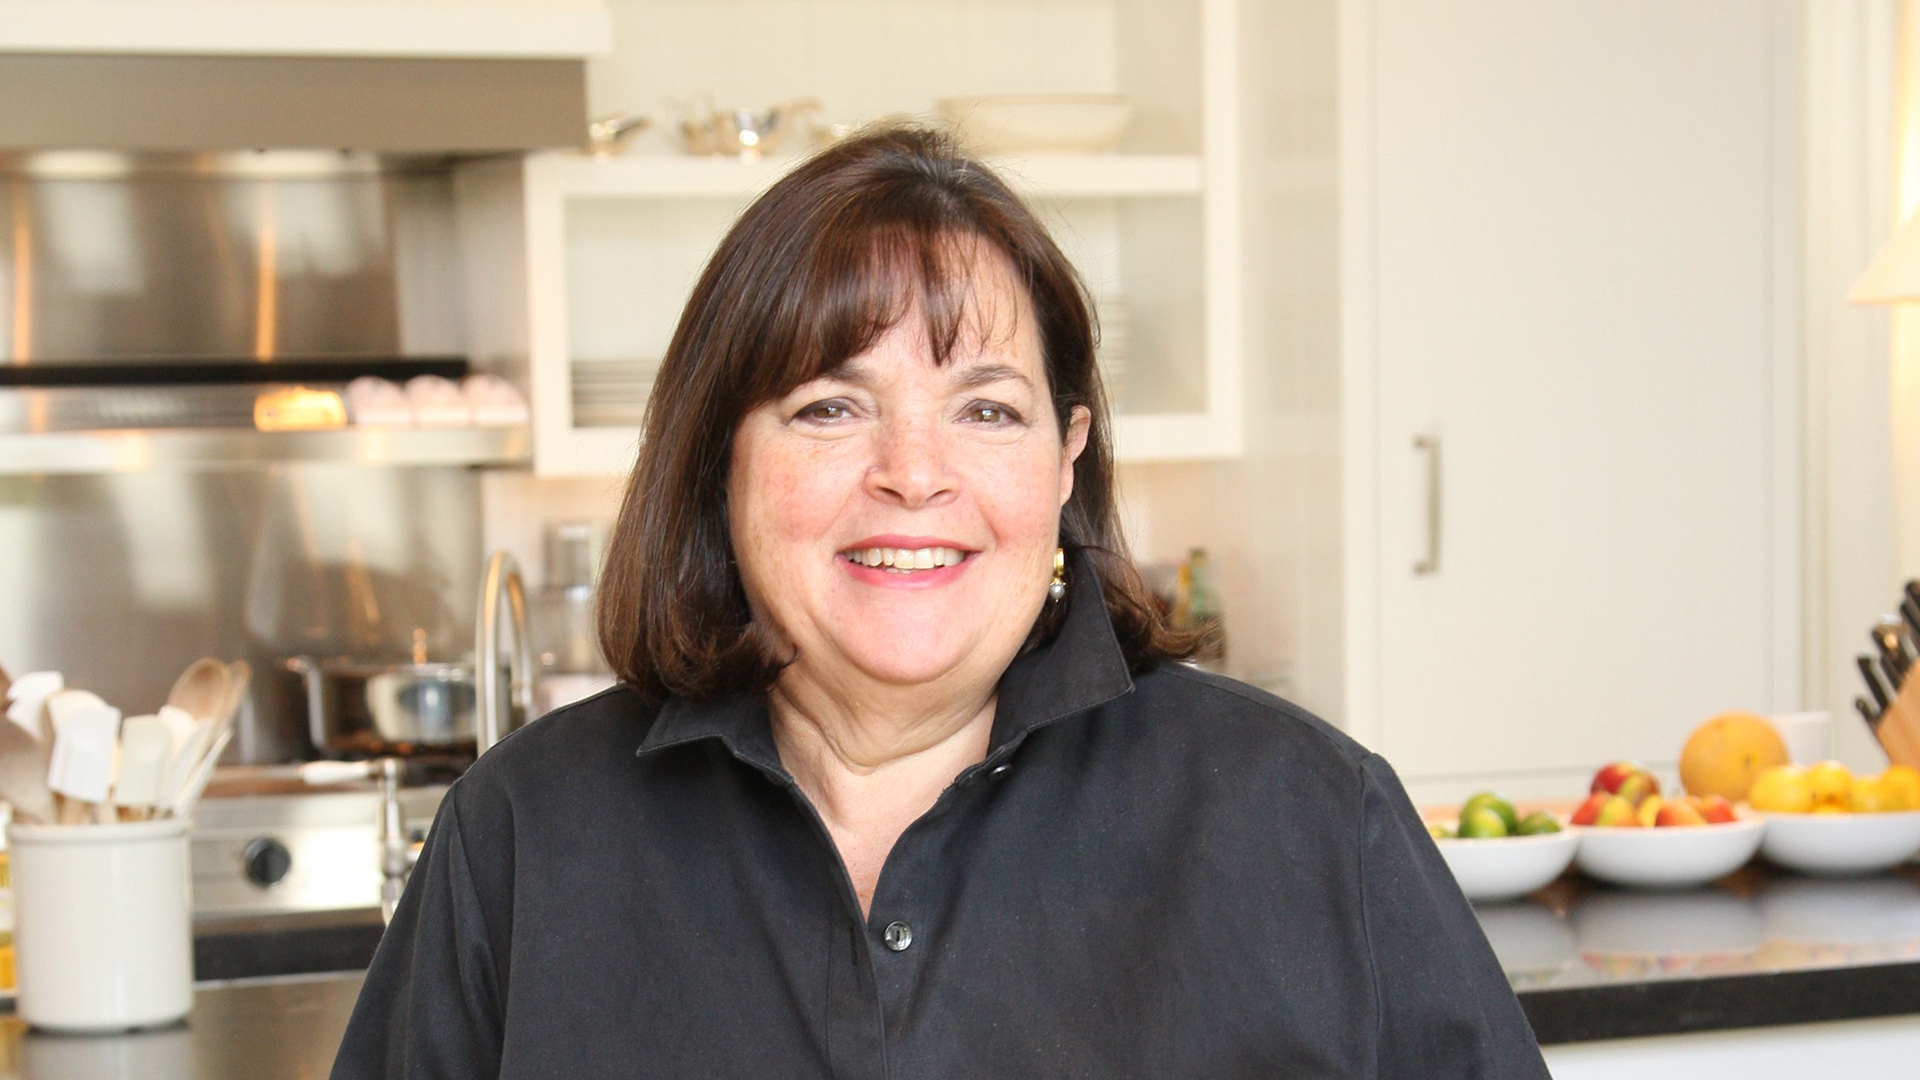 Ina Garten is Sharing Her Favorite Pantry Recipes On Instagram & We're Already Drooling